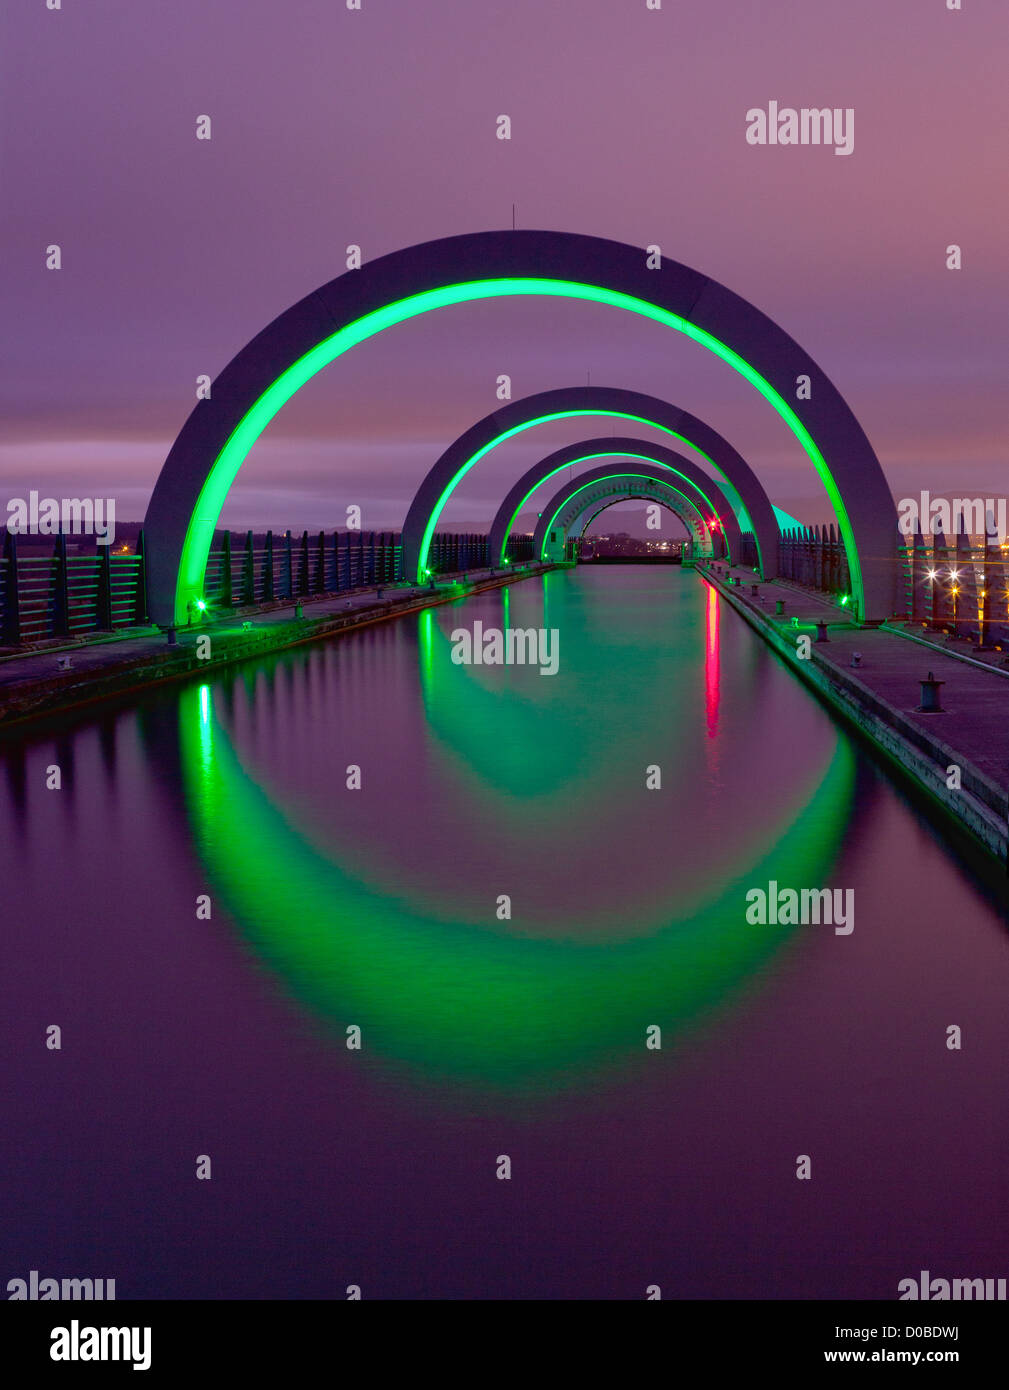 Falkirk Wheel upper canal at night - Stock Image